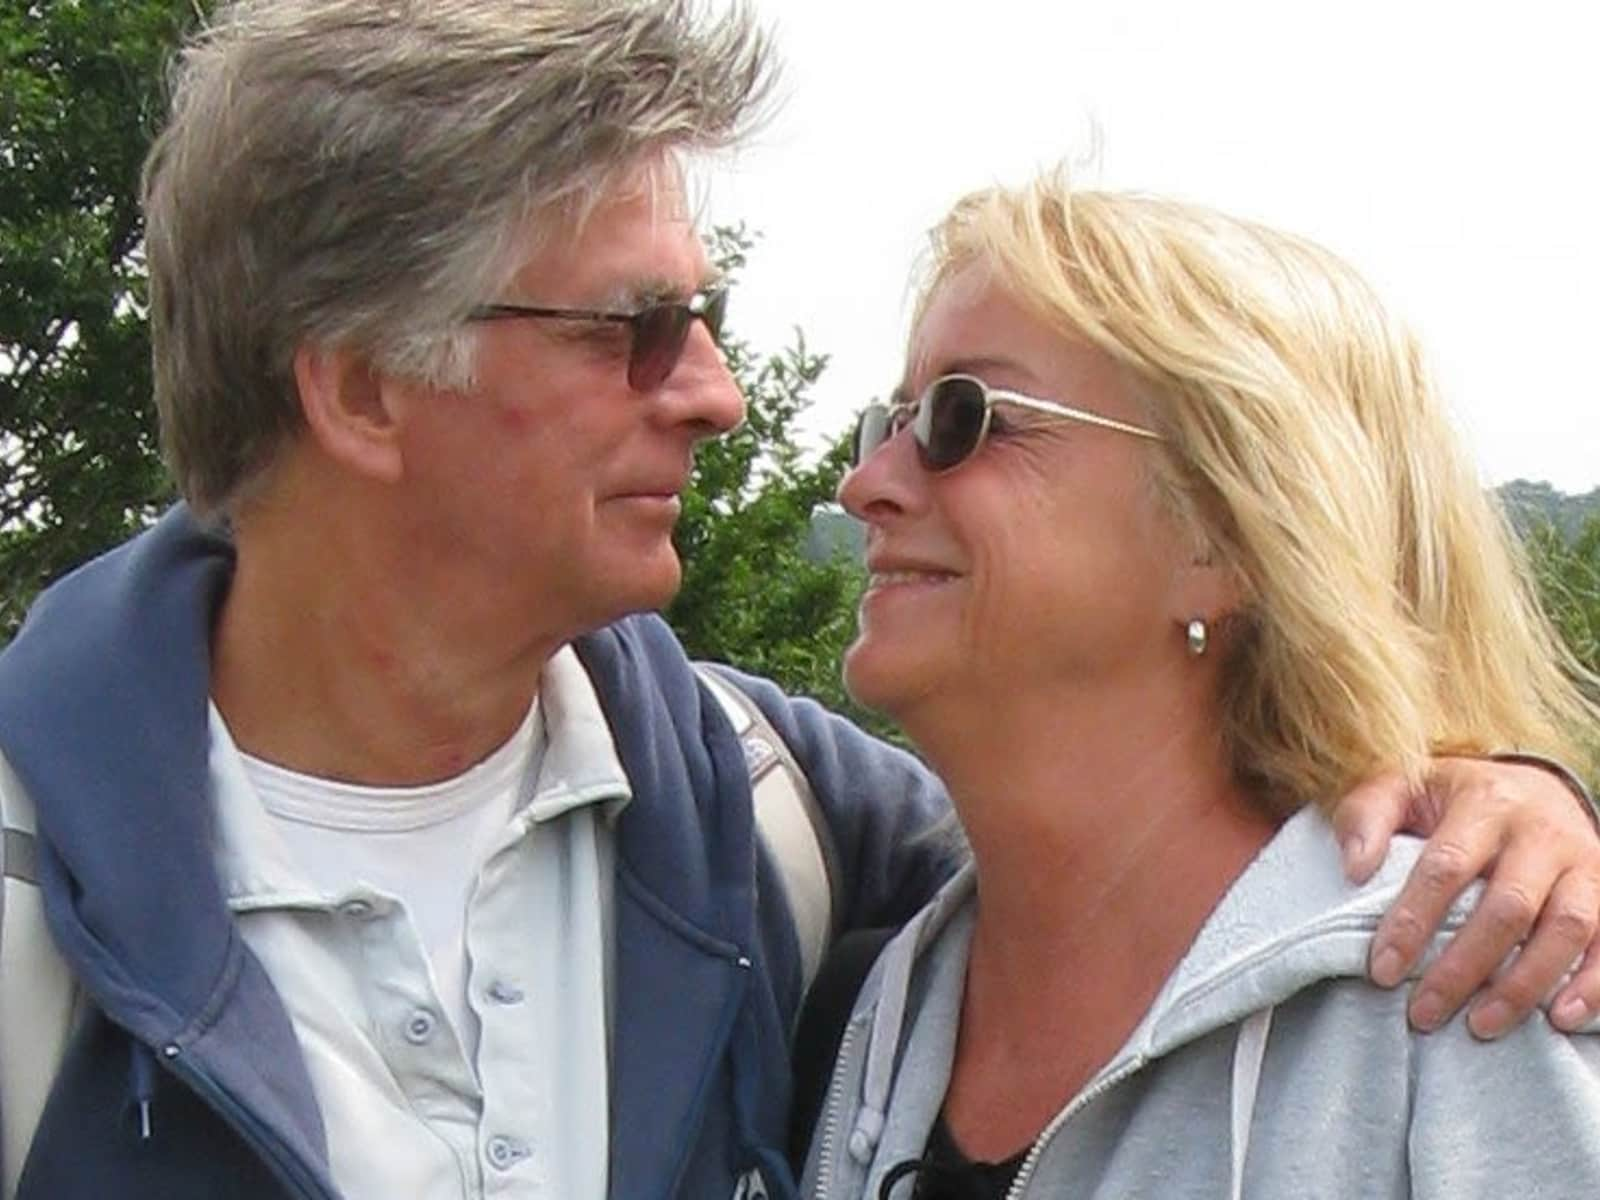 Mona & Pieter from Zegveld, Netherlands